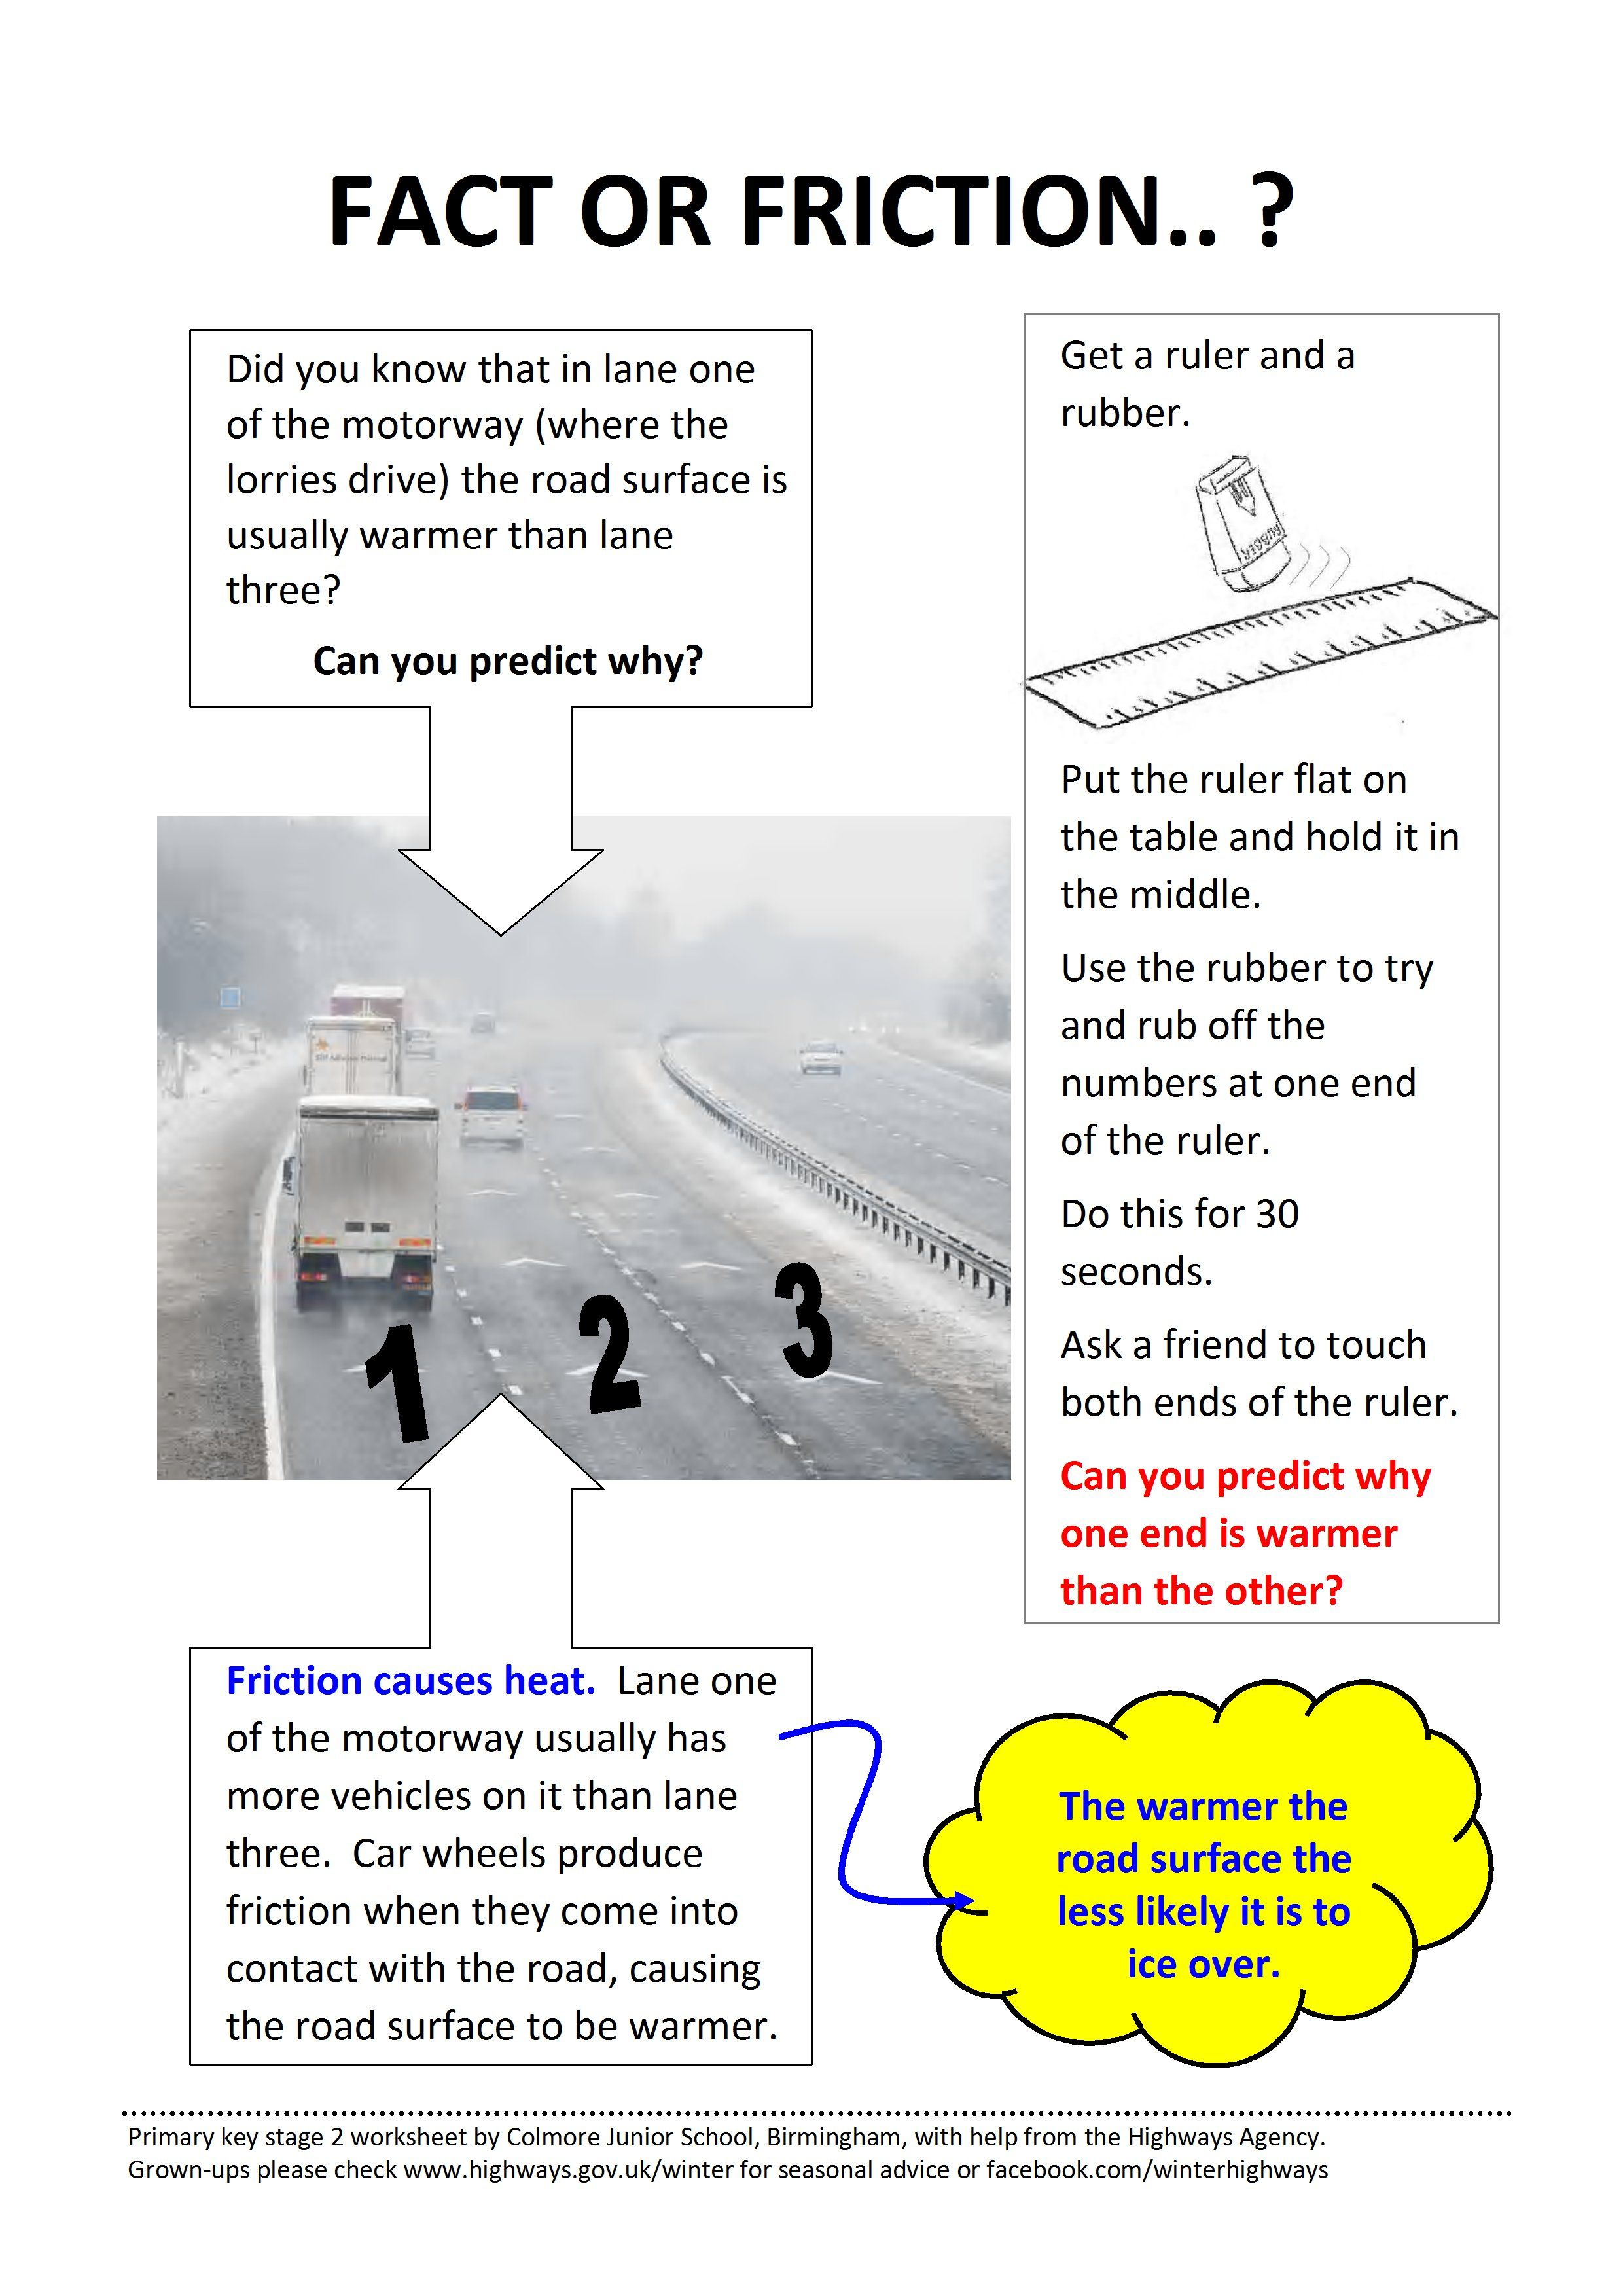 Primary Key Stage 2 Science Worksheet About Road Surface Temperature